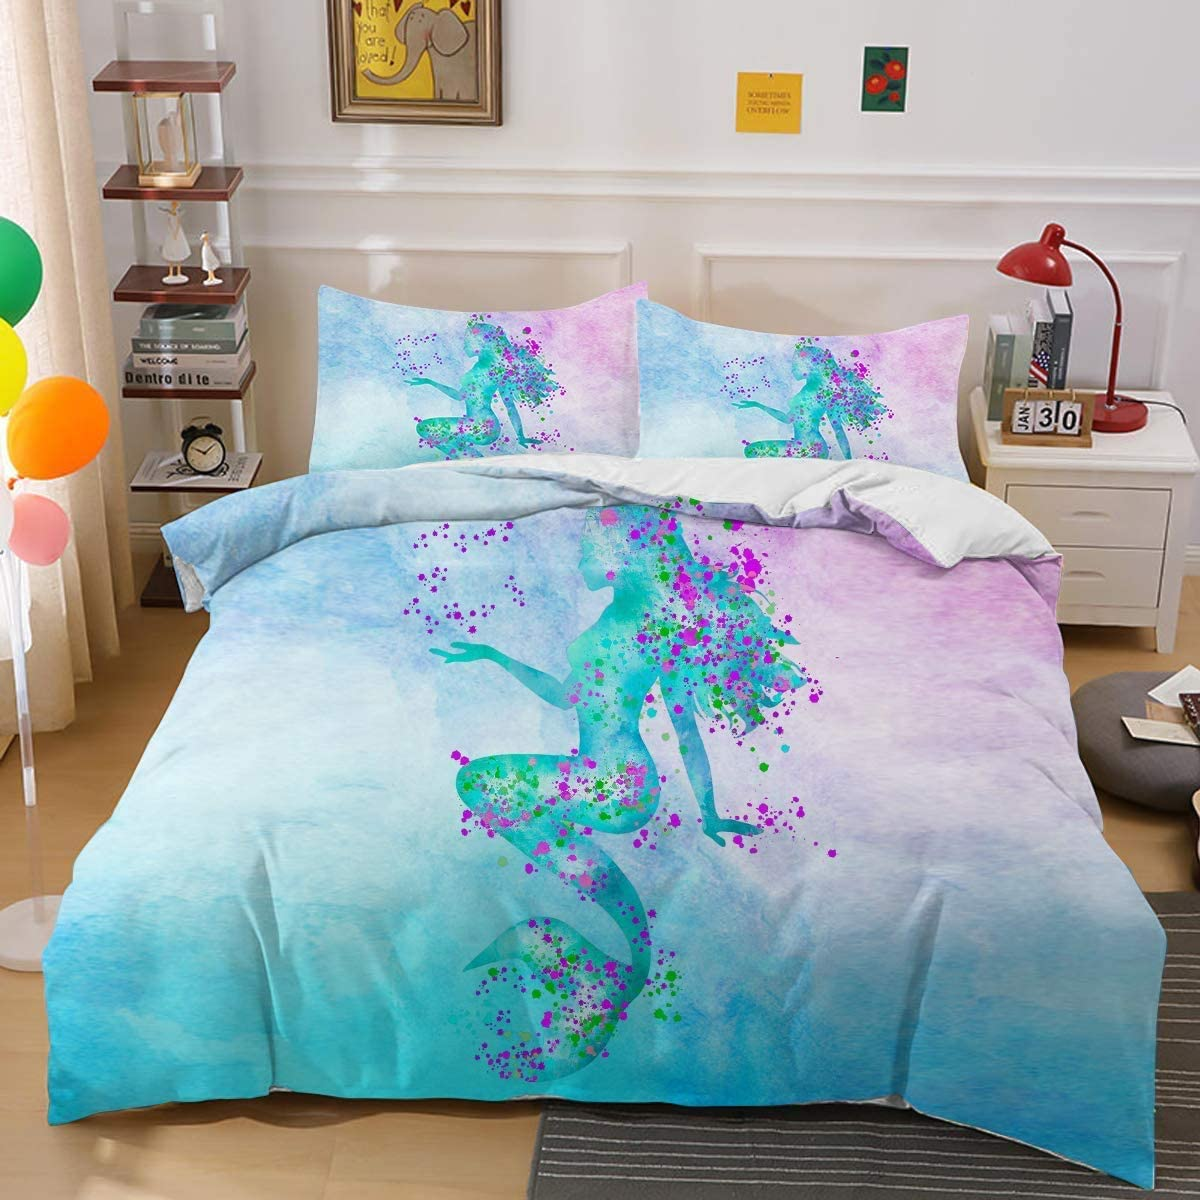 Digital Printed Comforter Cover for Boys and Girls 86x70 in Teens OWL QUEEN Sea Turtle Colorful Bedding Cover Cute Ocean Animal Children Duvet Cover Kids 3 Pieces 100/% Microfiber